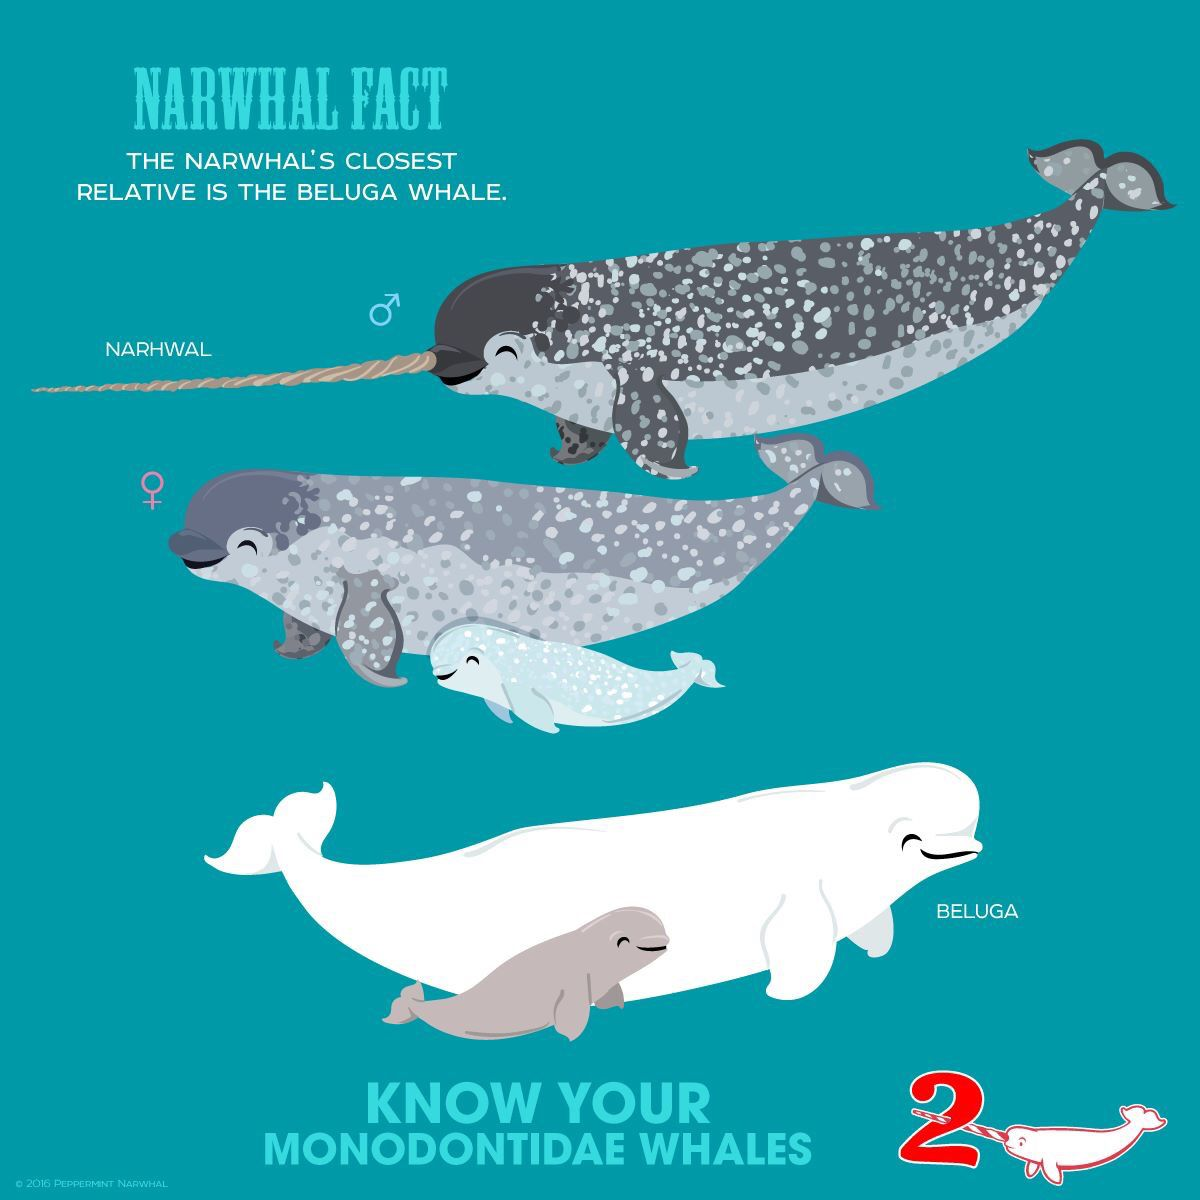 Pin By Meredith Seidl On Peppermint Narwhal Creative Fun